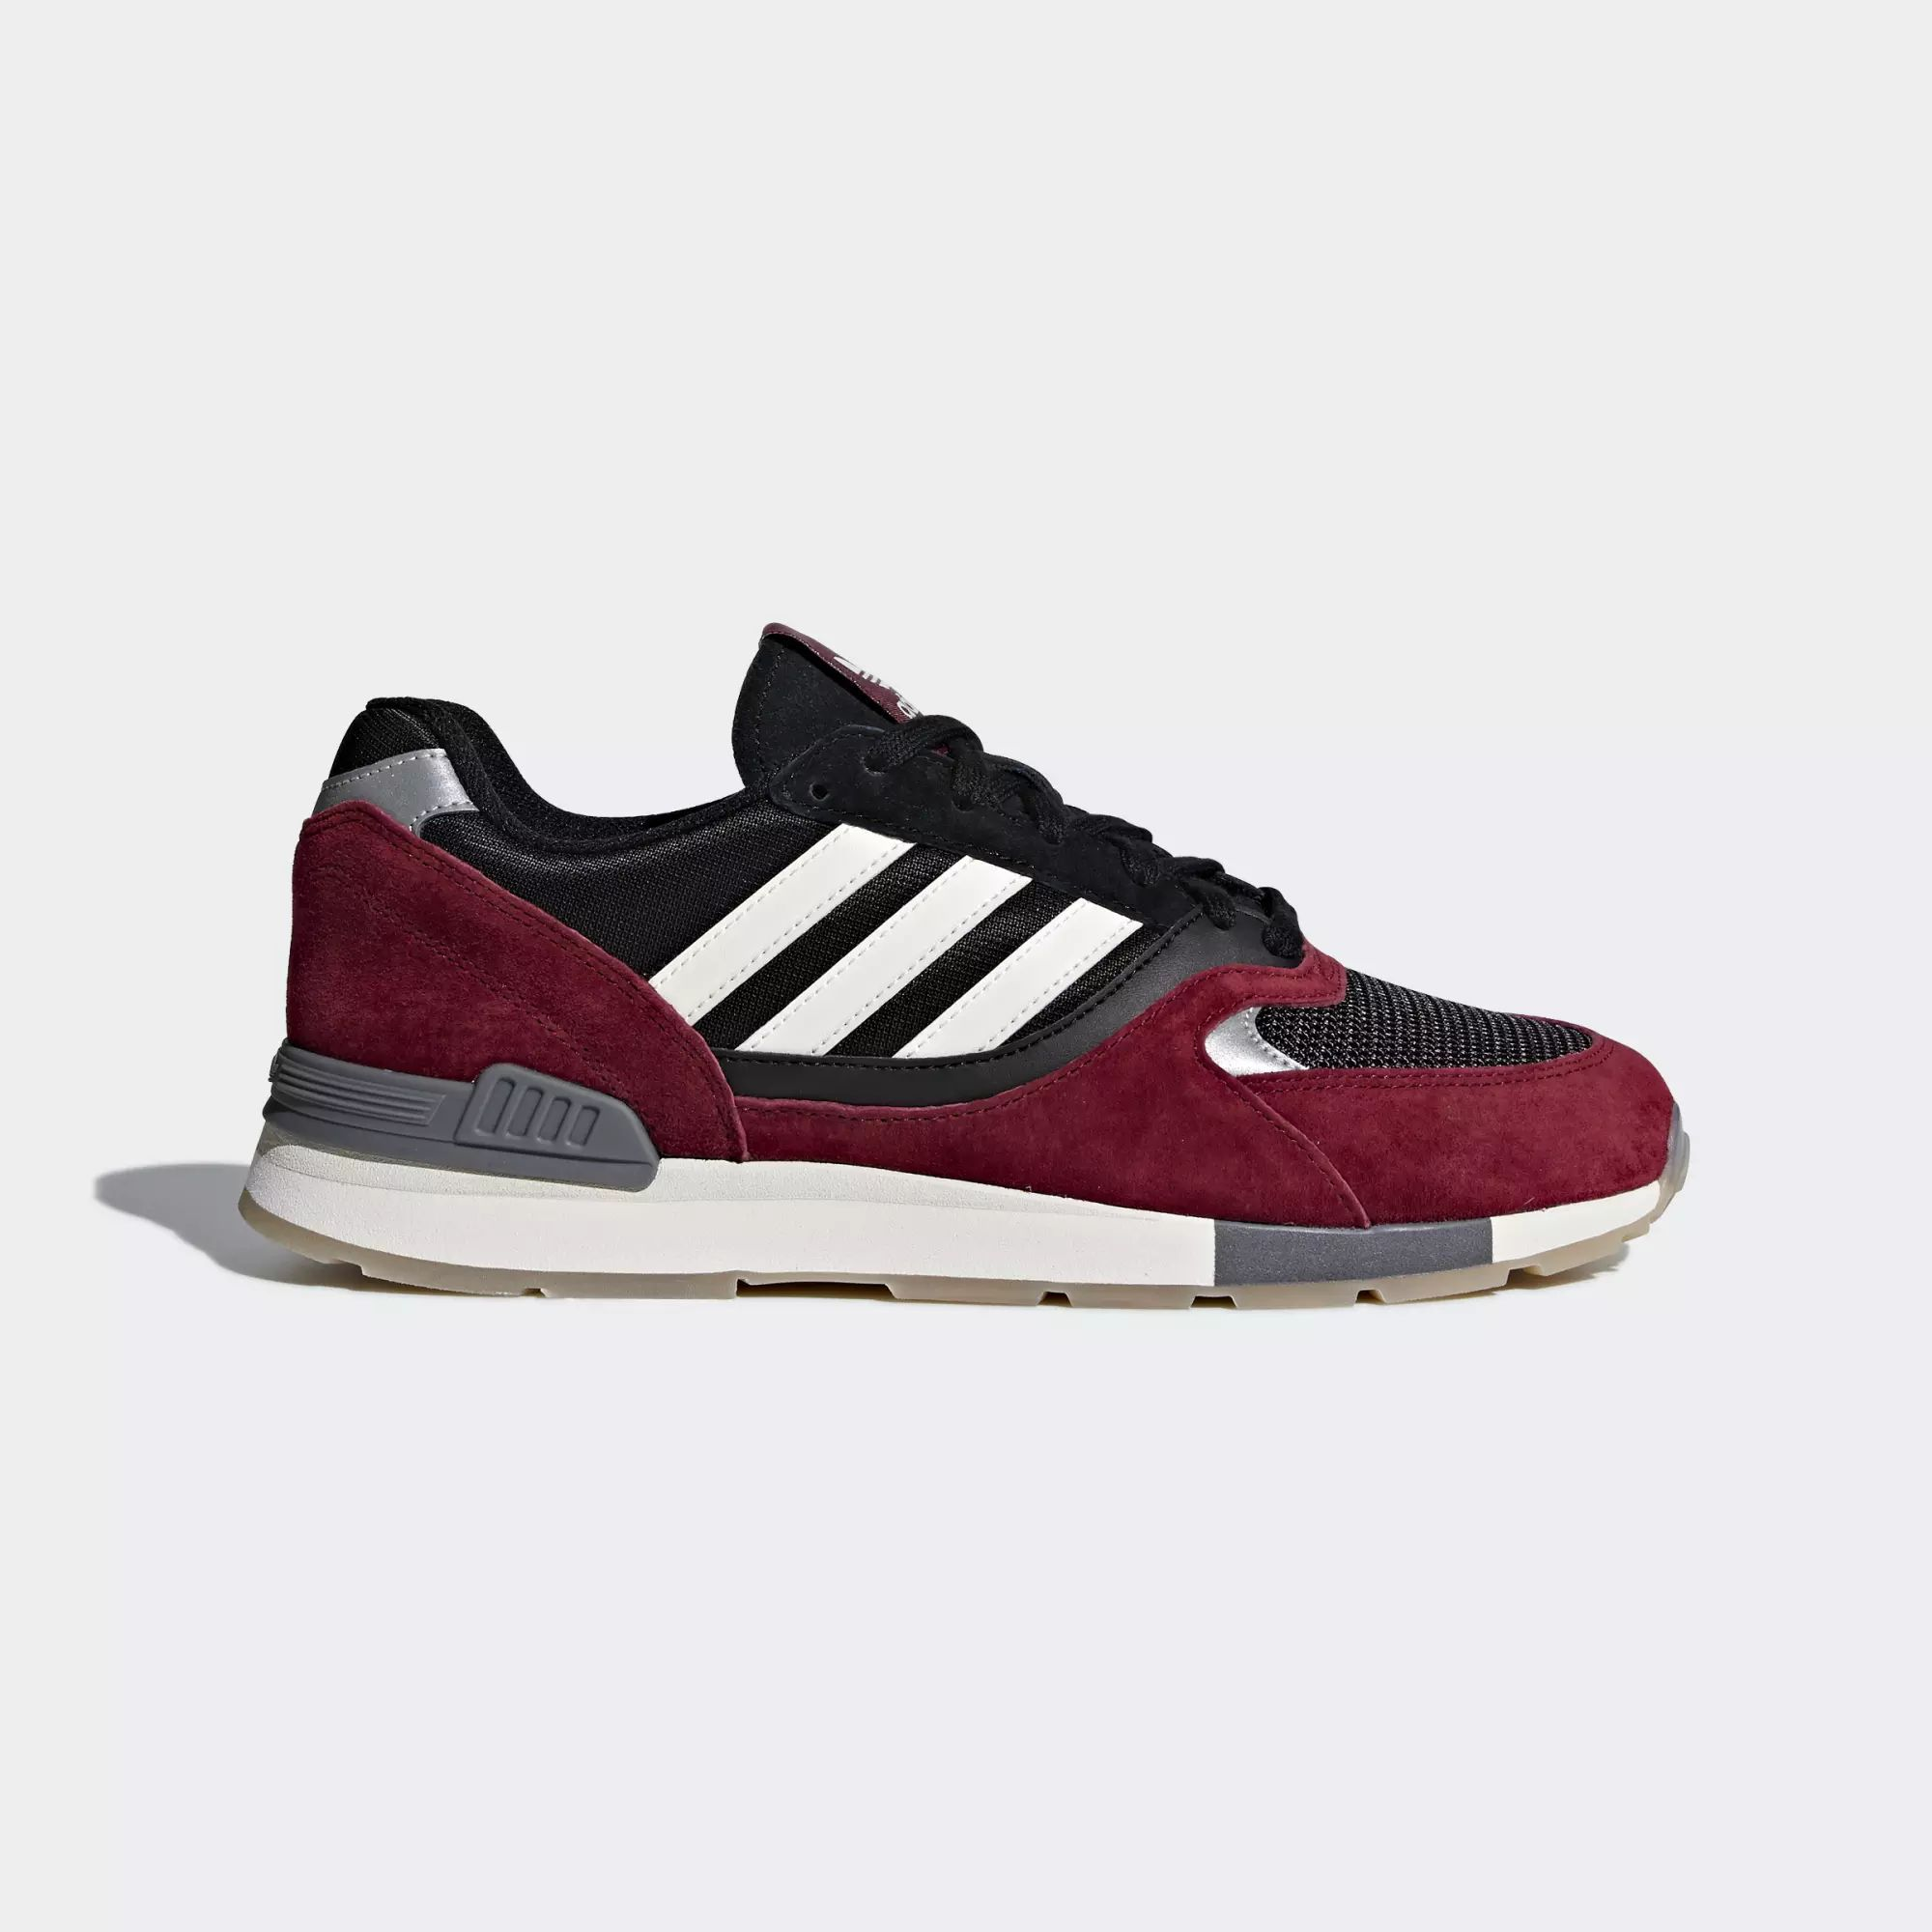 Adidas Quesence Shoes Collegiate Burgundy Chalk White